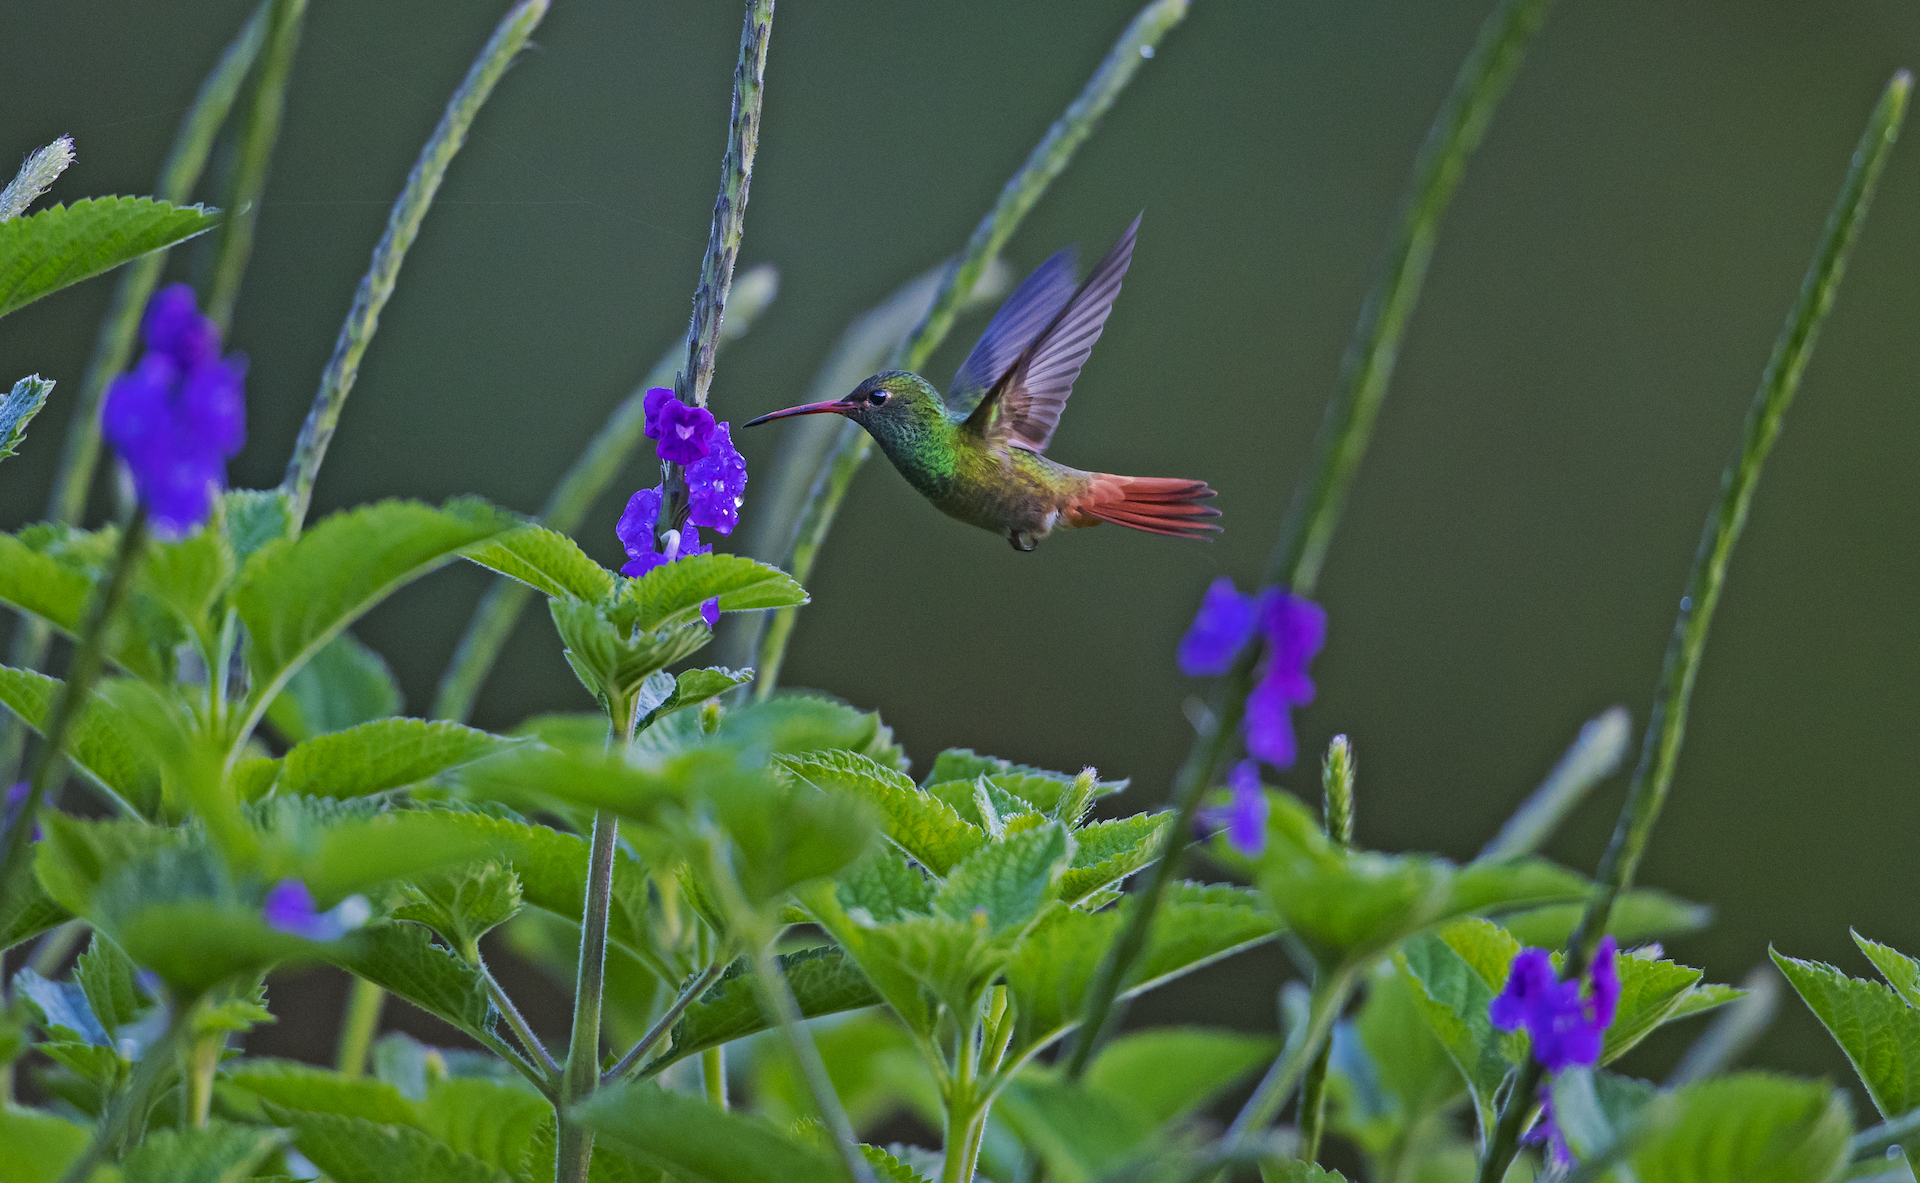 Hummingbirds spend their waking hours foraging for nectar. Like this rufous tailed hummingbird, they are voracious eaters that need to consume double their body weight in food every single day. To satisfy their energy needs, hummingbirds feed on an average of 5-6 times every hour. They can starve in as little as two hours if they don't have flowers to feed.